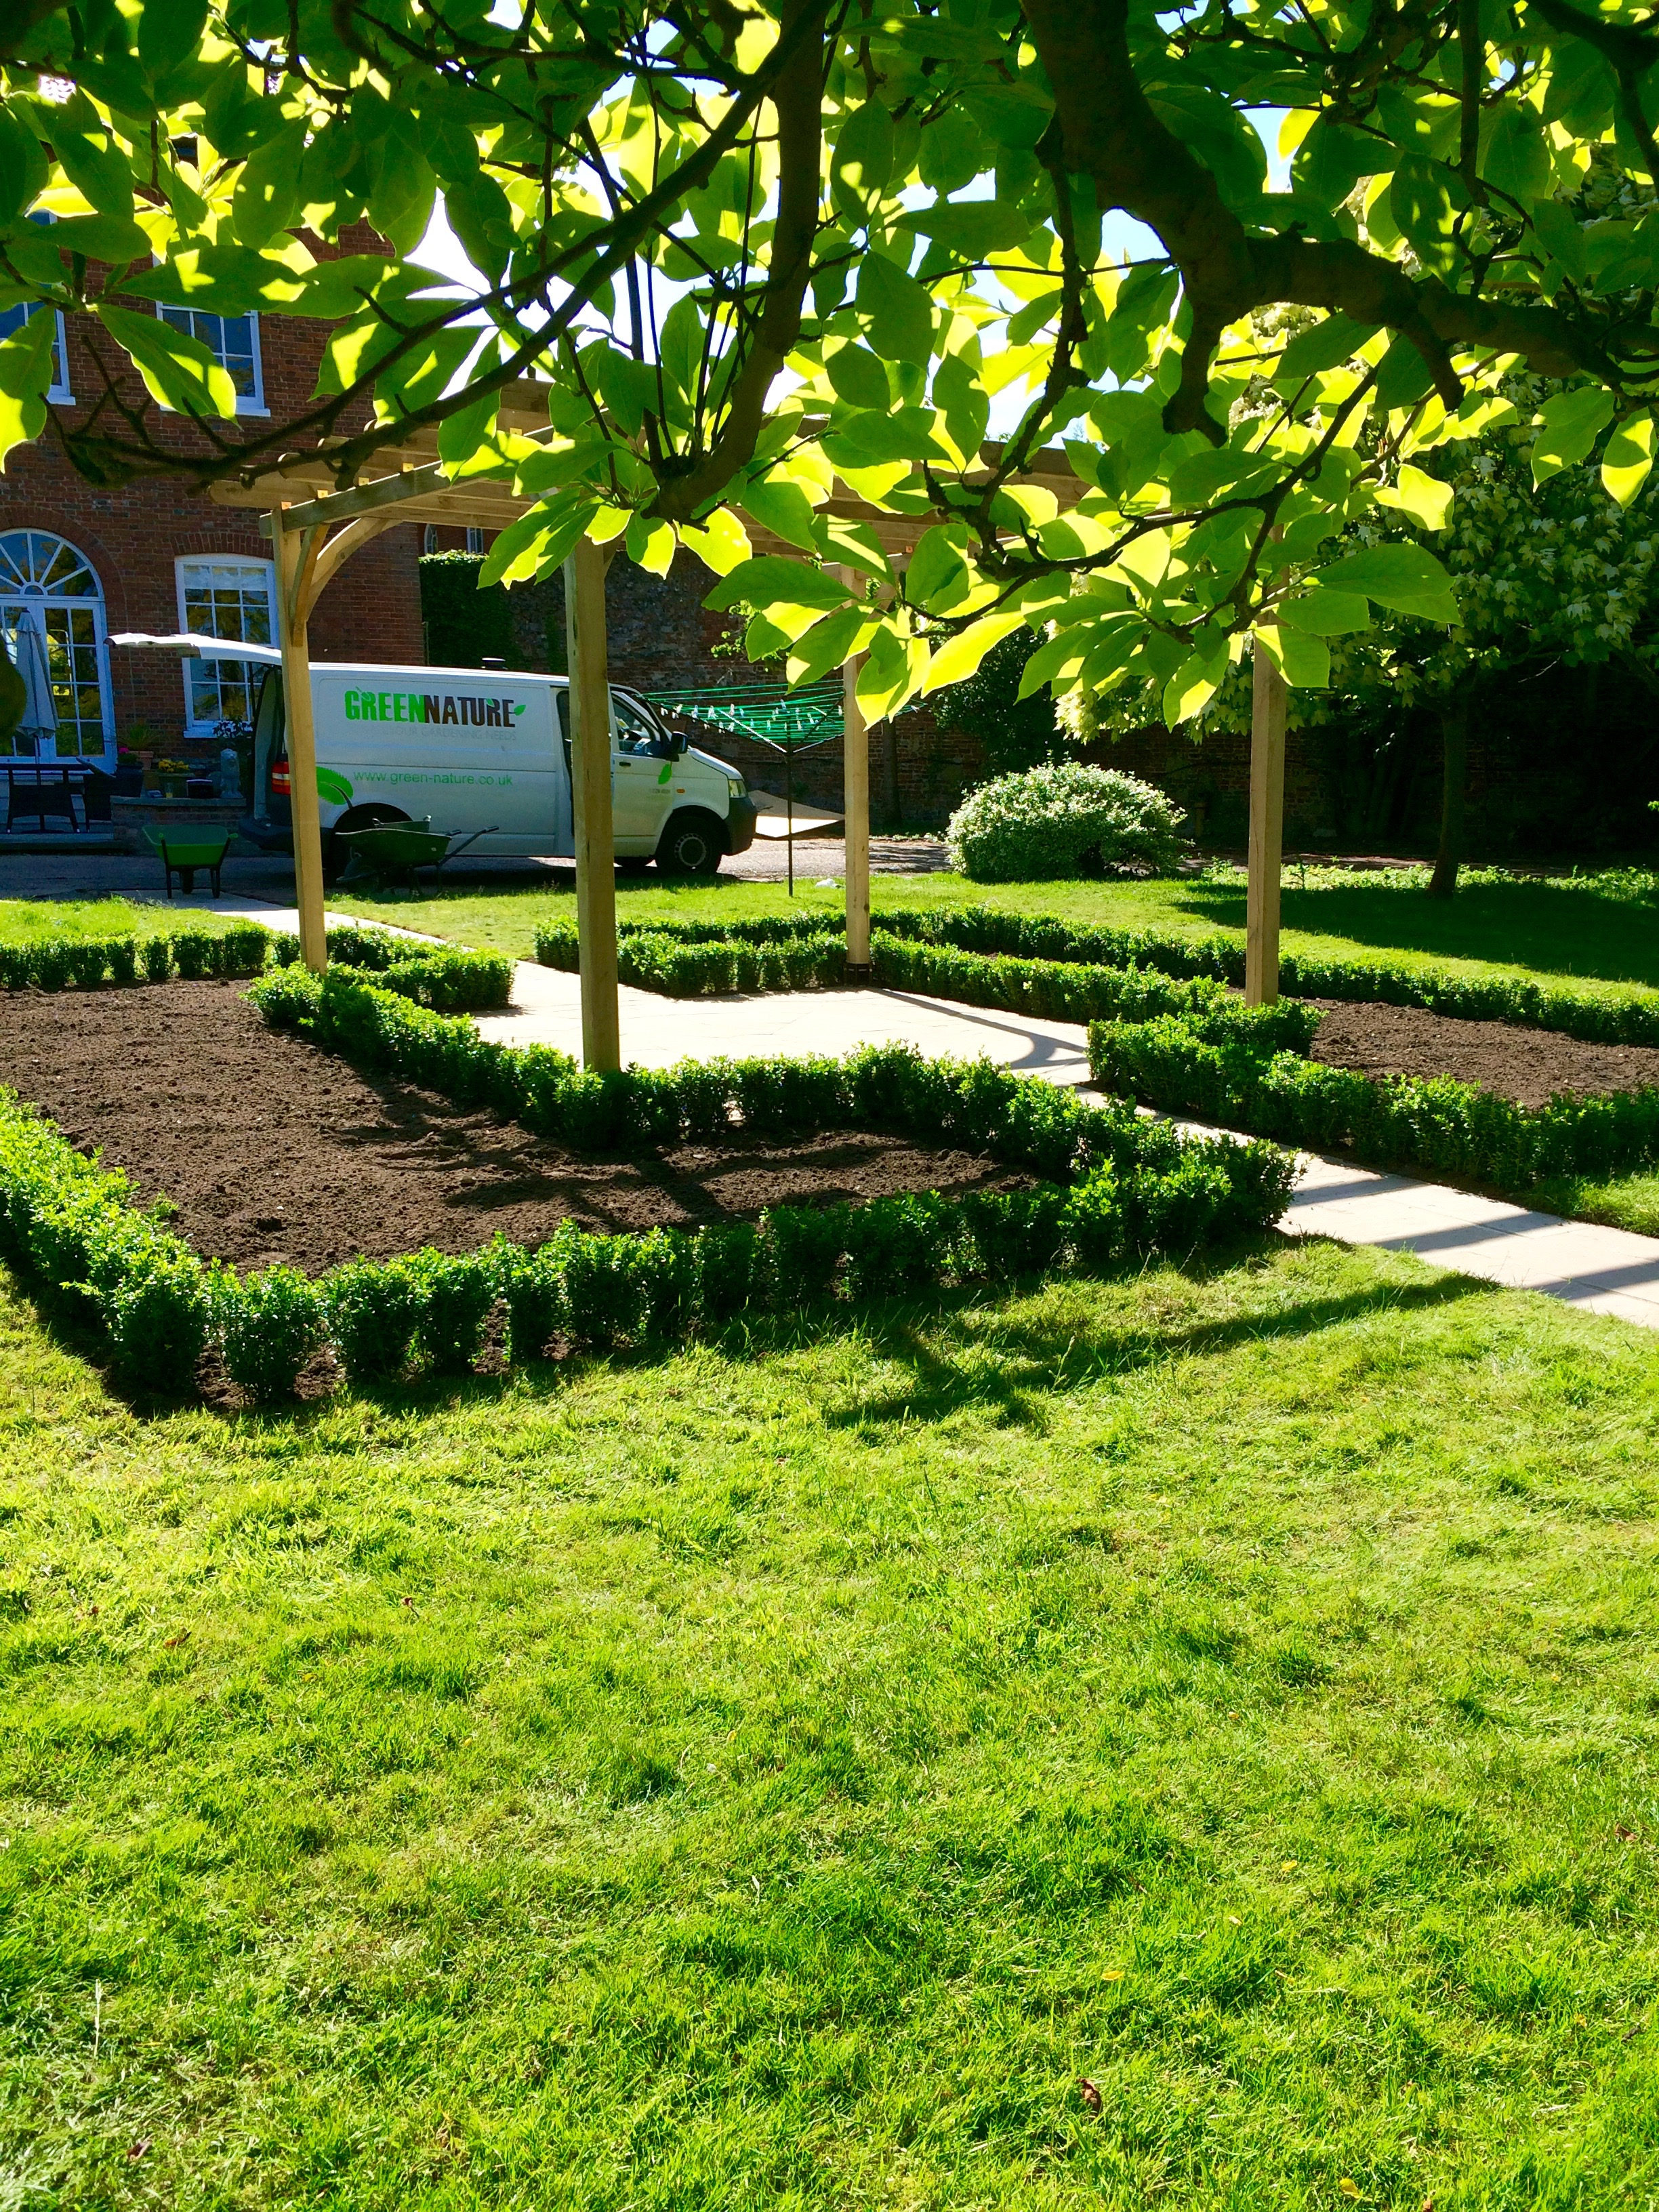 Garden Landscaping Services Based In Bury St Edmunds Suffolk